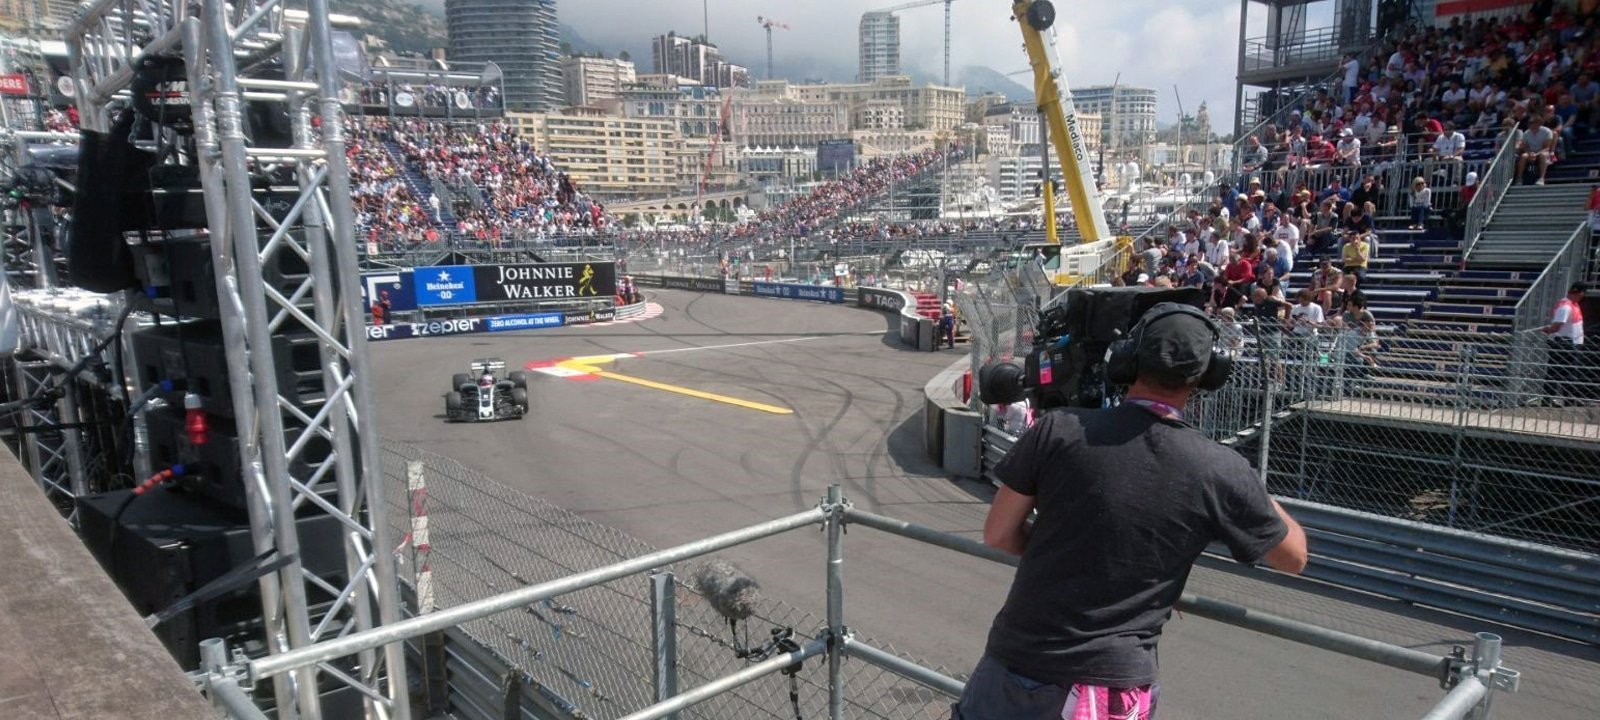 ES Broadcast Hire's 4K Cameras and Lenses in use at the F1 Monaco Grand Prix